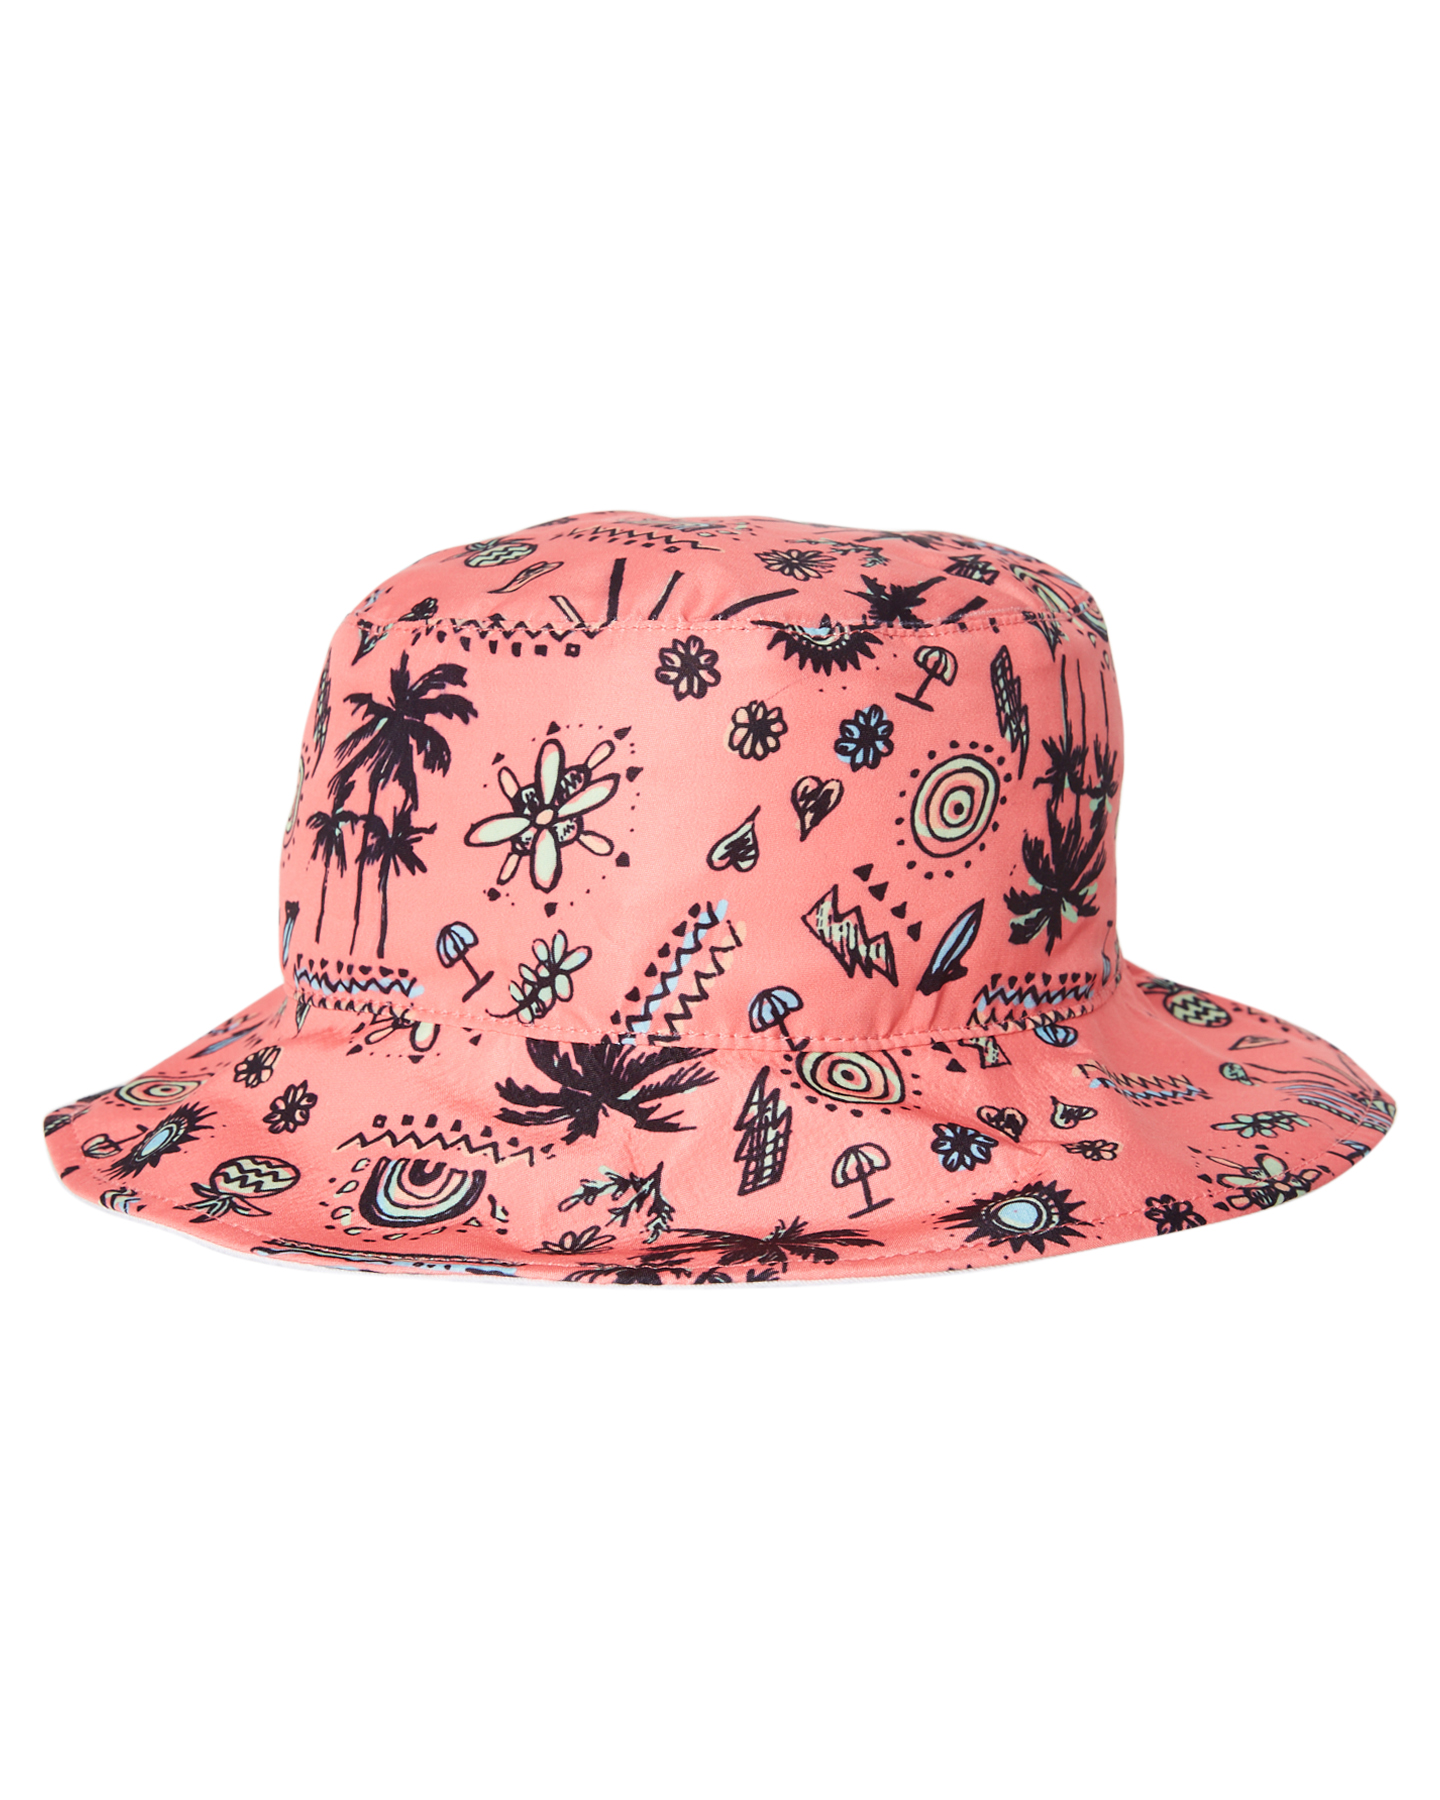 404d2815fe3 Details about Rip Curl Girls Girls Anak Bucket Hat - Kids Cotton Polyester  Pink